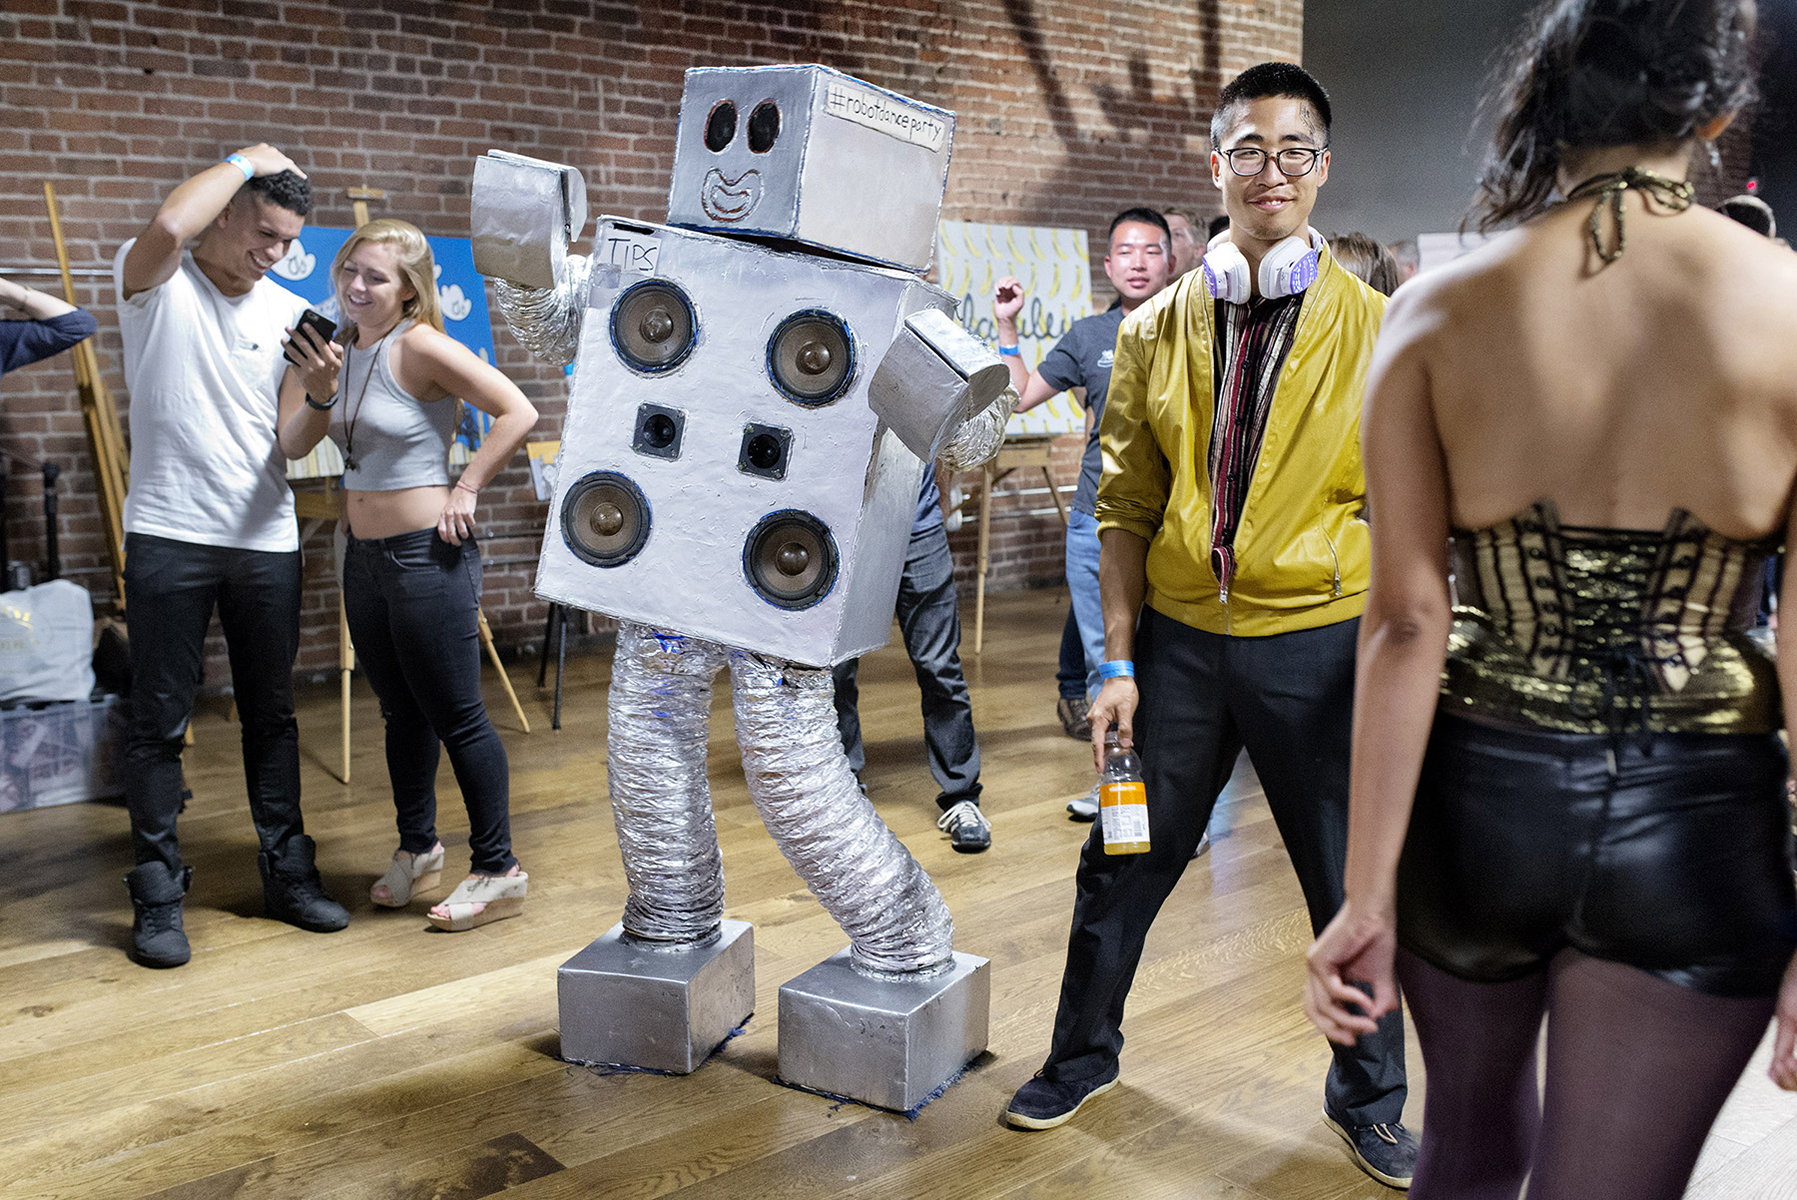 "Chris Hirst entertains guests in his ""Robot Dance Party"" costume during a party organized by the co-living house 20 Mission, home to many start-up entrepreneurs, titled ""Too Big for Our House"" in San Francisco, Calif., in July 2015. The house's elaborate parties had been getting almost too large for their living space so they decided to rent a venue downtown to host the event. Hirst wears his robot suit, which has speakers built into it, to DJ events and parties around town."